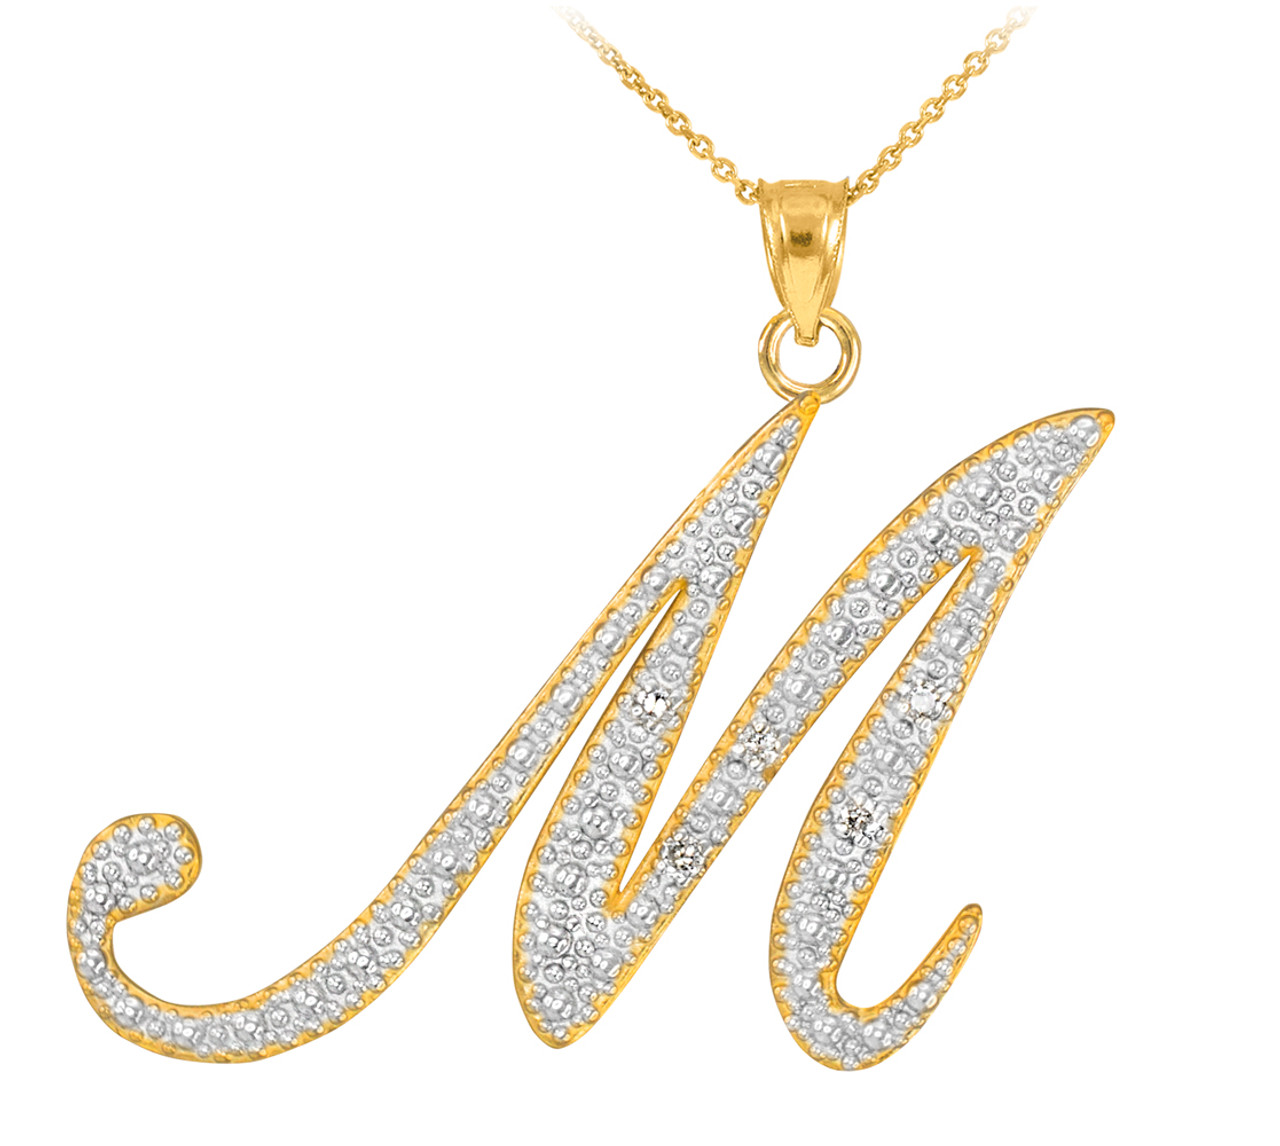 image s sv initial ed necklace co alphabet media is ecombrowsel letters tiffany bracelets defaultimage usm jewelry op com necklaces pendant